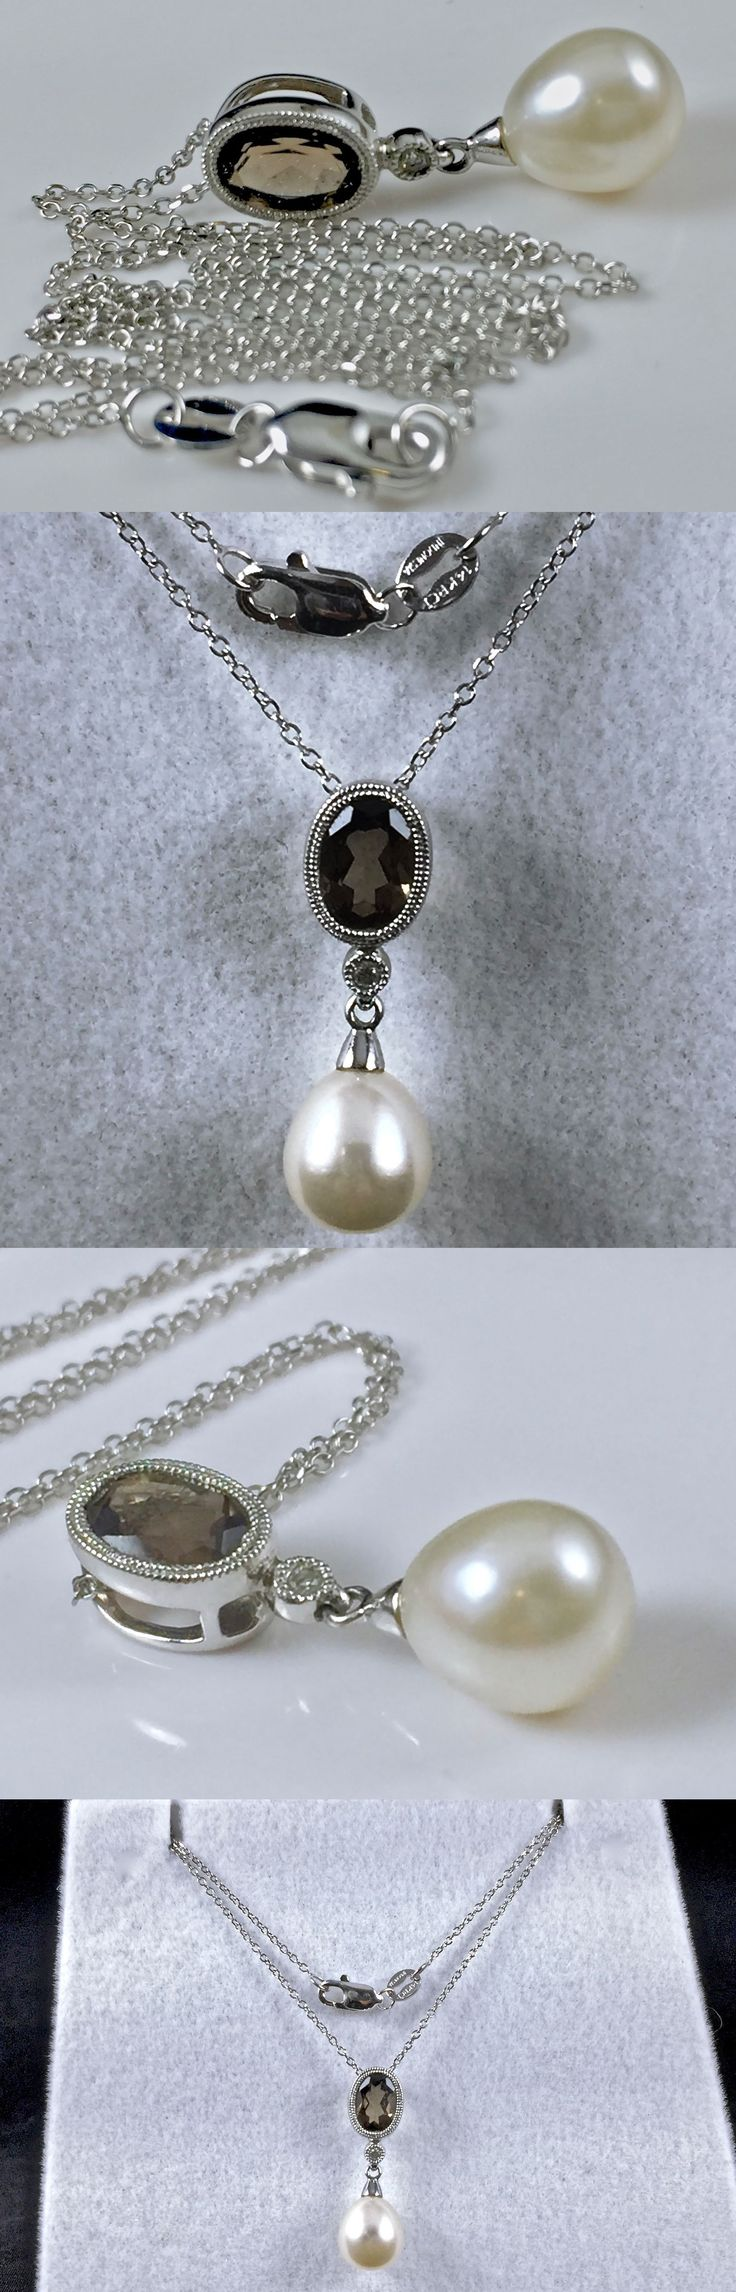 Pearl 164333: 14K White Gold Chain Necklace W/ White Cultured Pearl Quartz Diamond Pendant 16 -> BUY IT NOW ONLY: $98.0 on eBay!